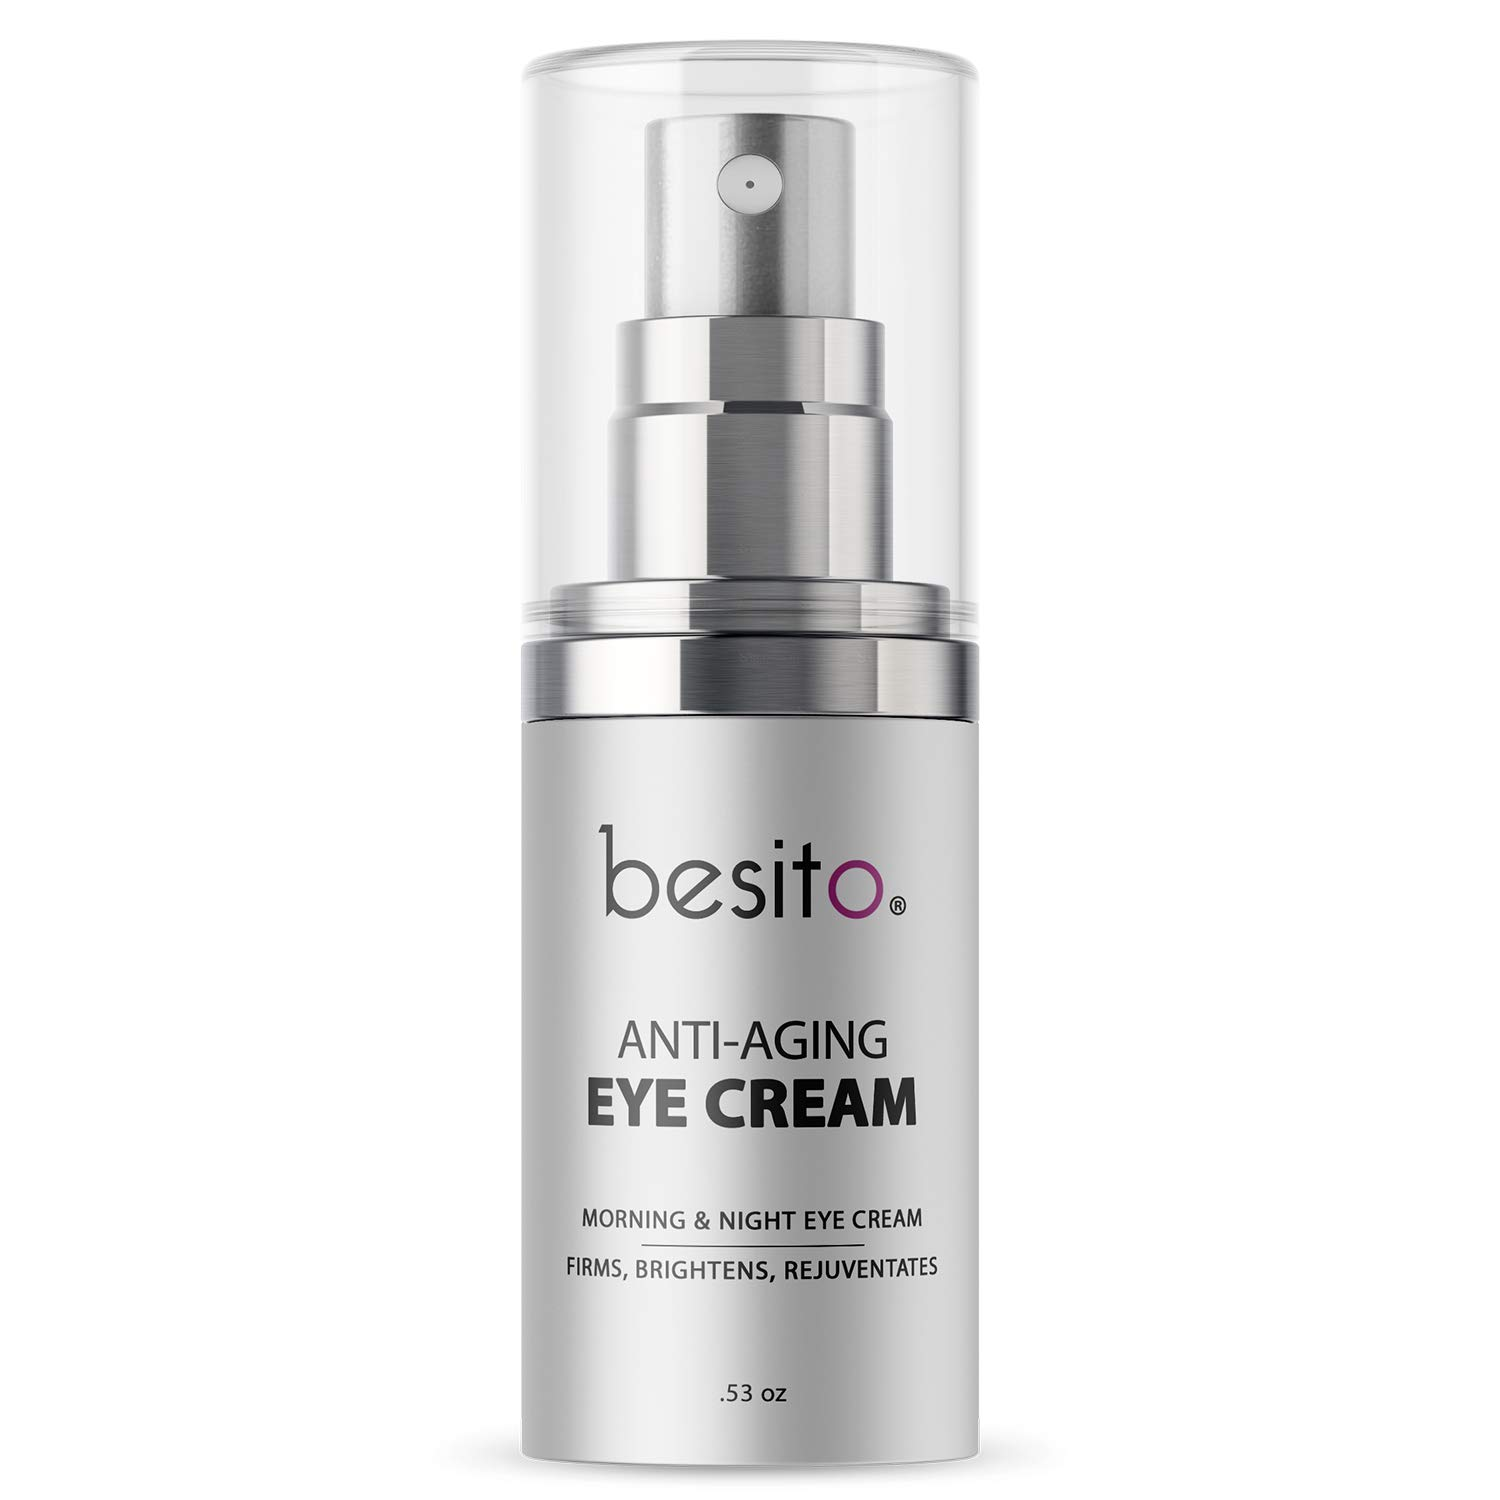 Anti Aging Eye Cream for Dark Circles and Puffiness, Eye Bags, Crow's Feet, Fine Lines, and Sagginess by BESITO